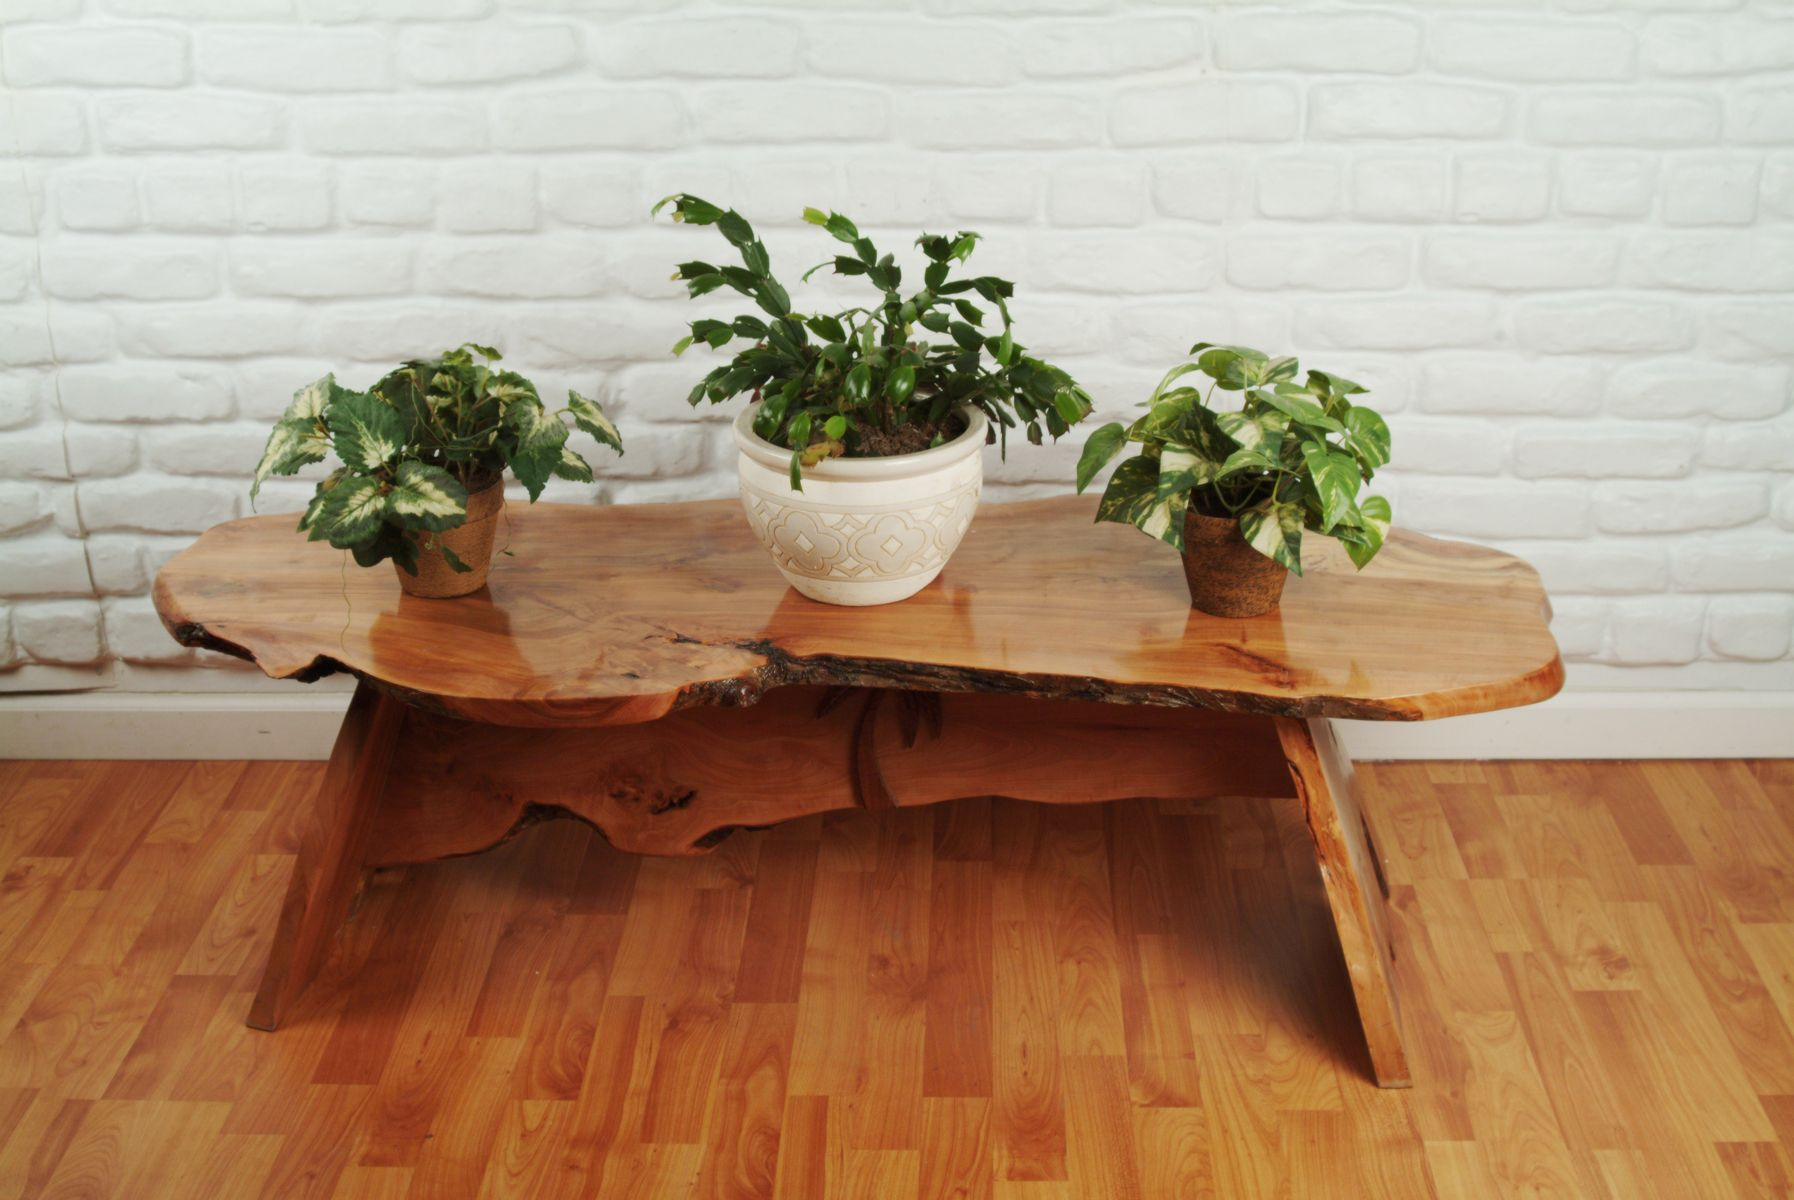 Choose this Unique Coffee Tables with Log Like Surface and Unusual Design on Hardwood Flooring